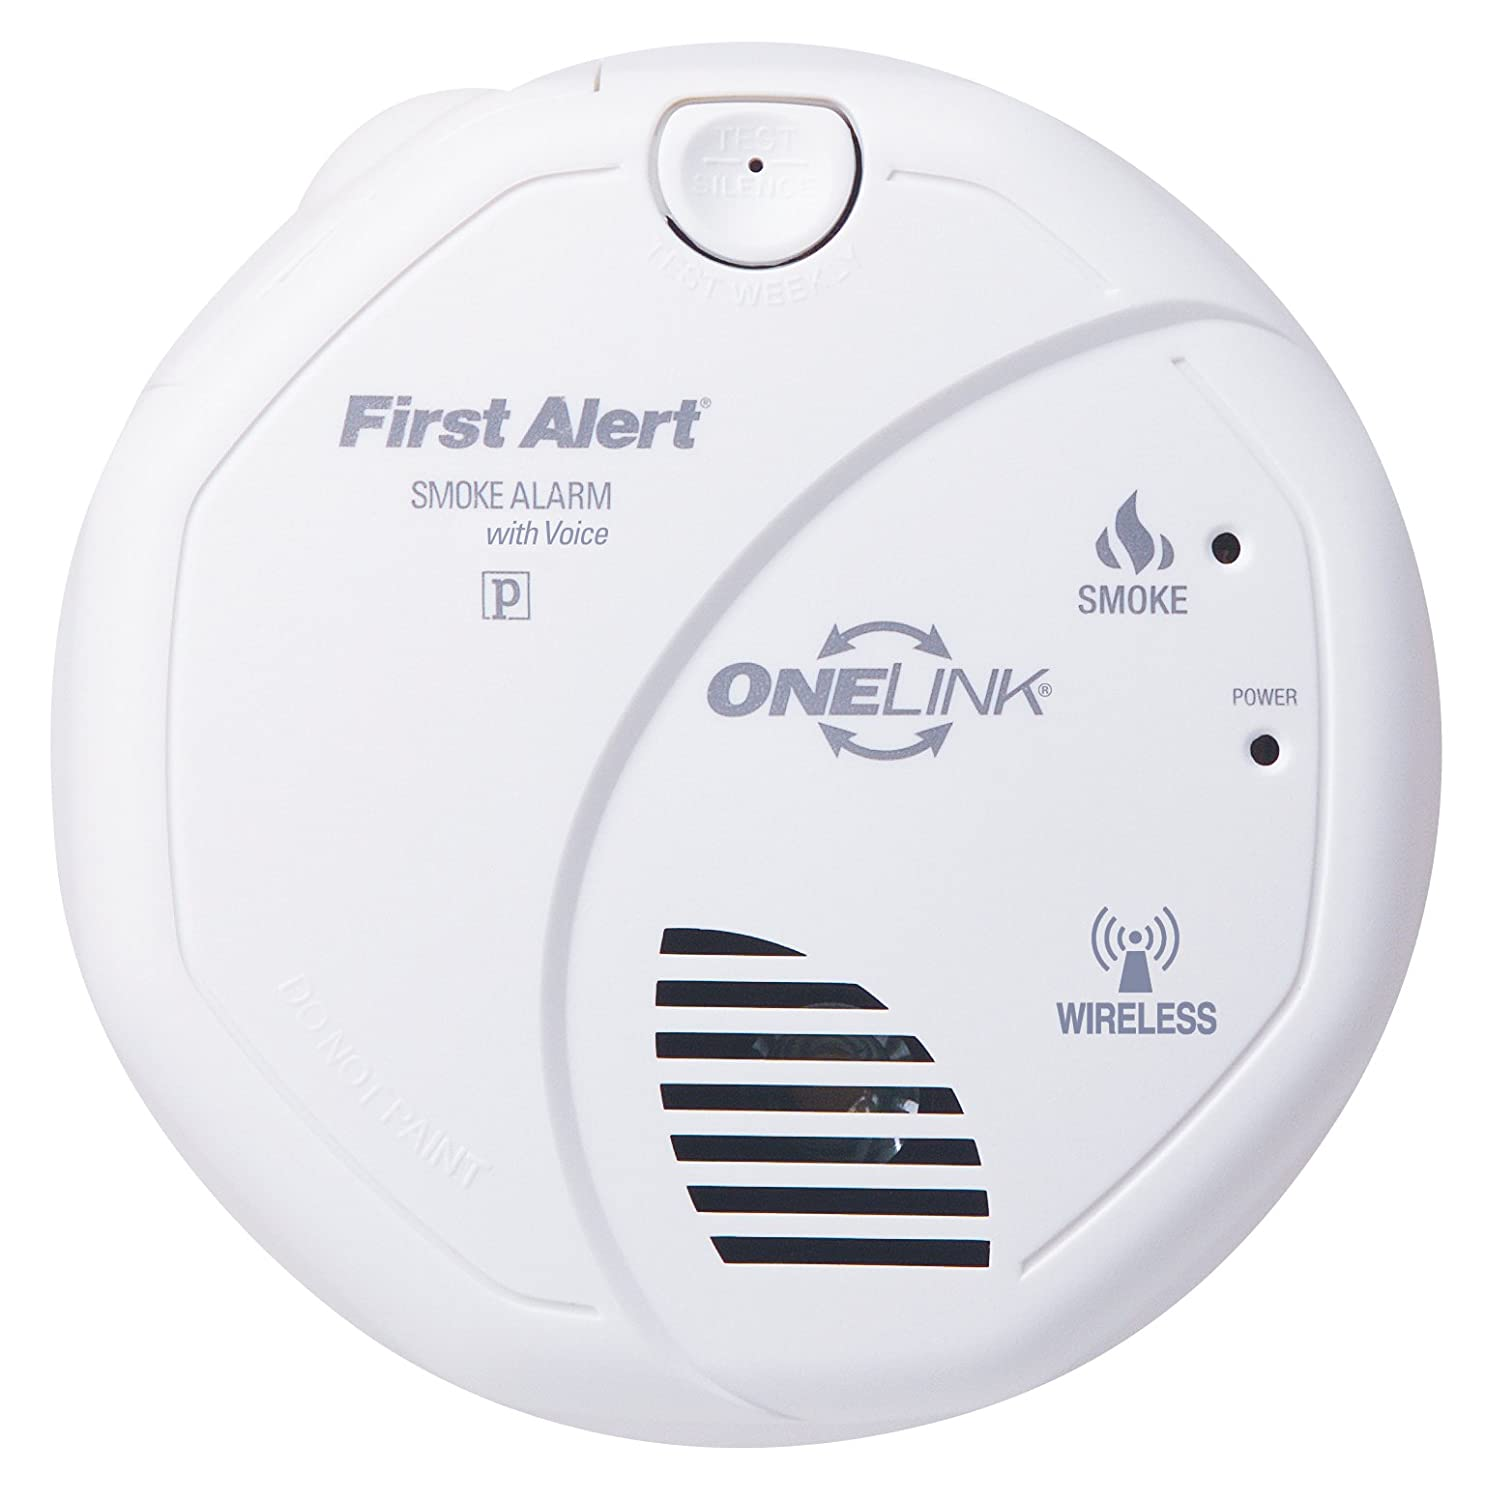 The Best Smoke Alarms Reviews Comparisons Of Top Rated Also Photoelectric Sensor On Wiring Diagram